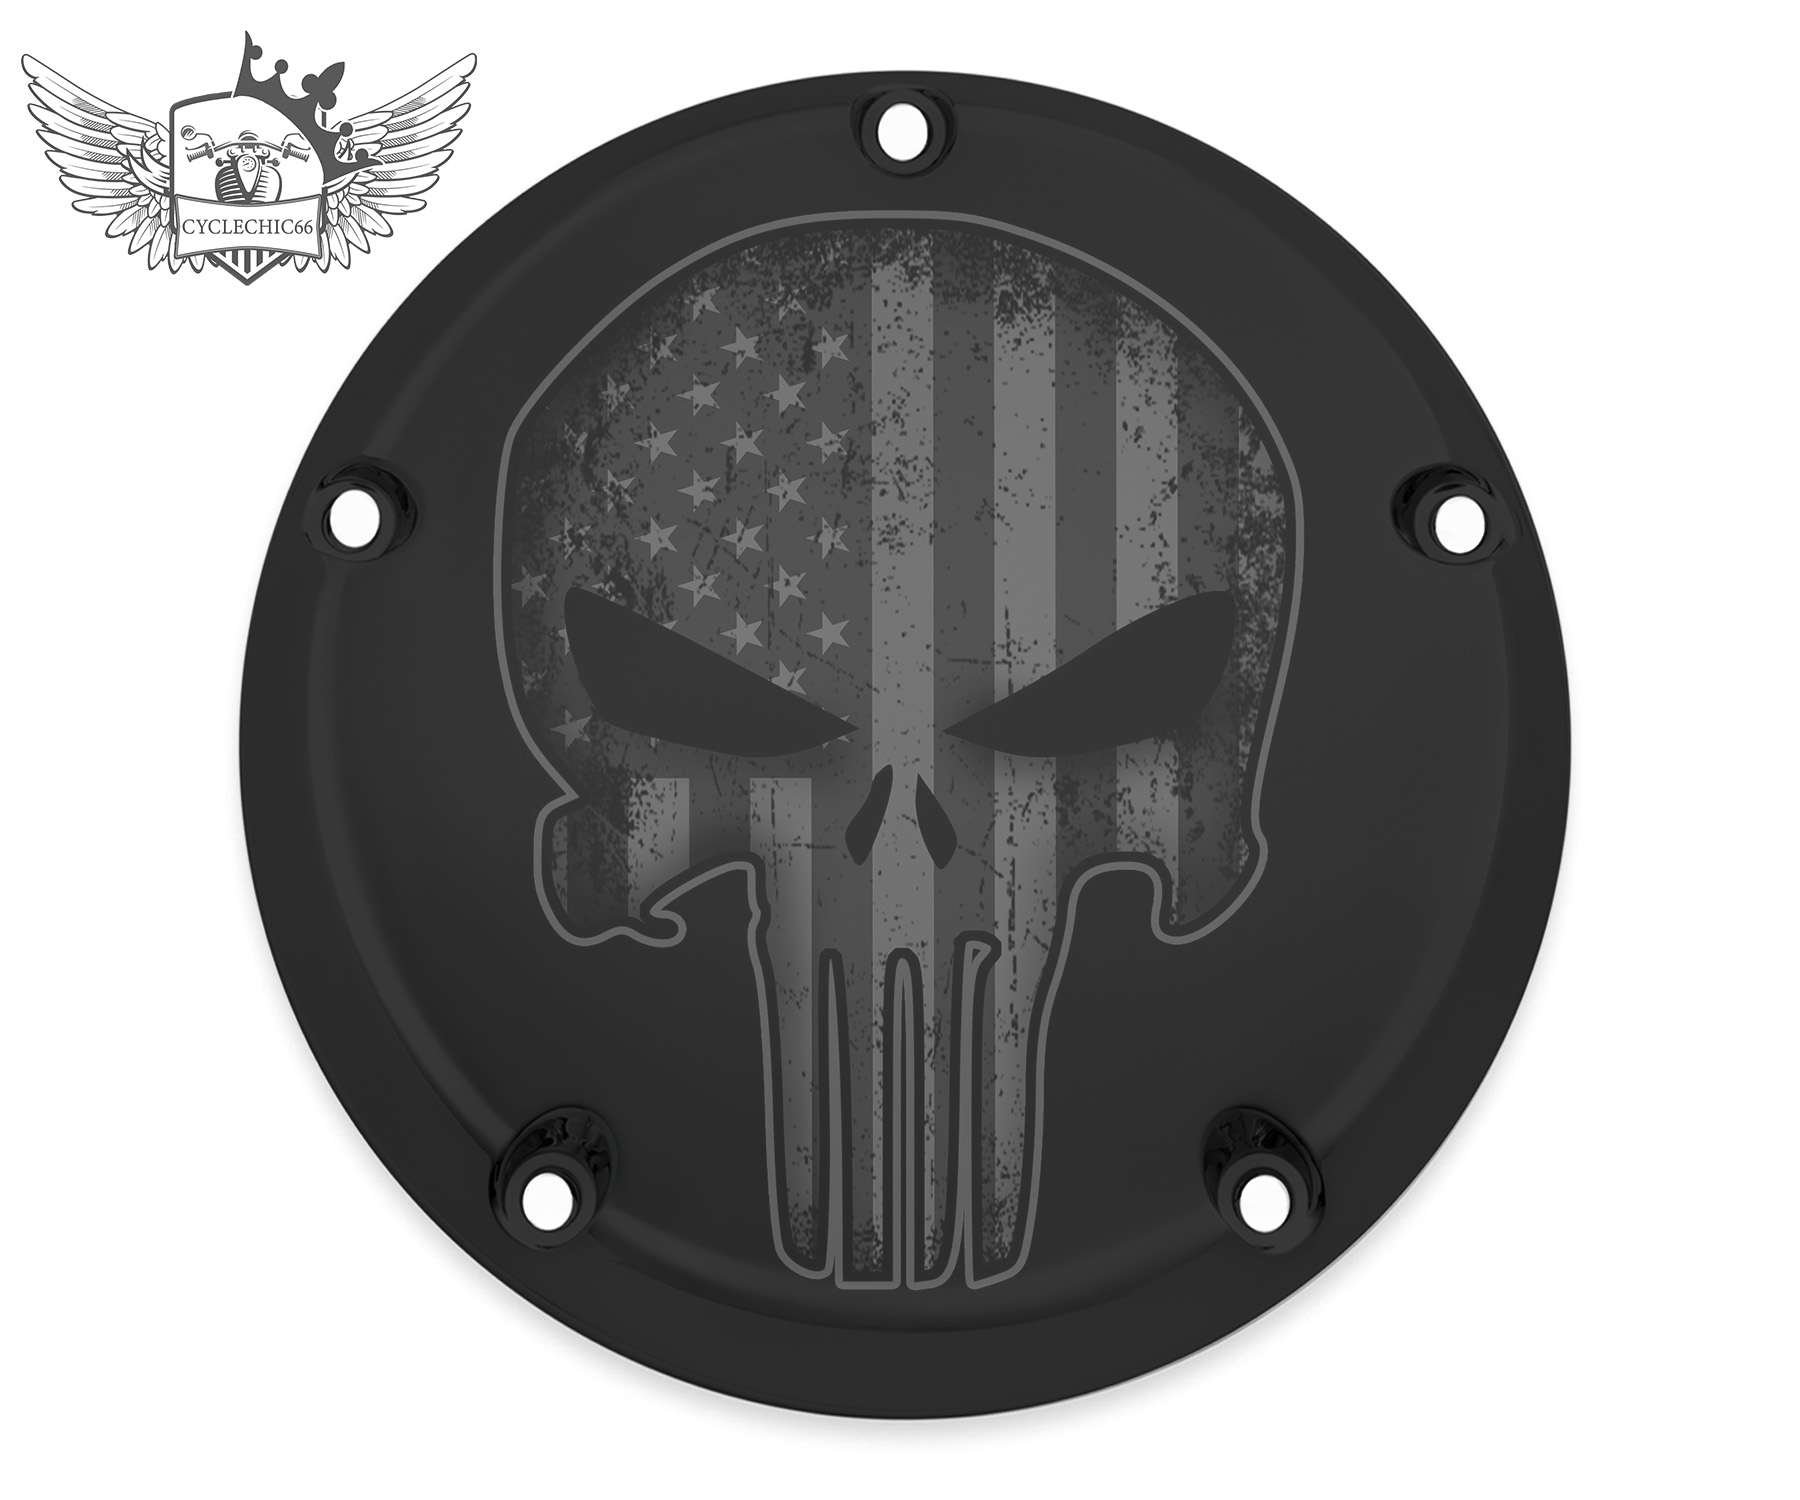 Harley Davidson Derby/Clutch Cover - Punisher, BLK and WHT